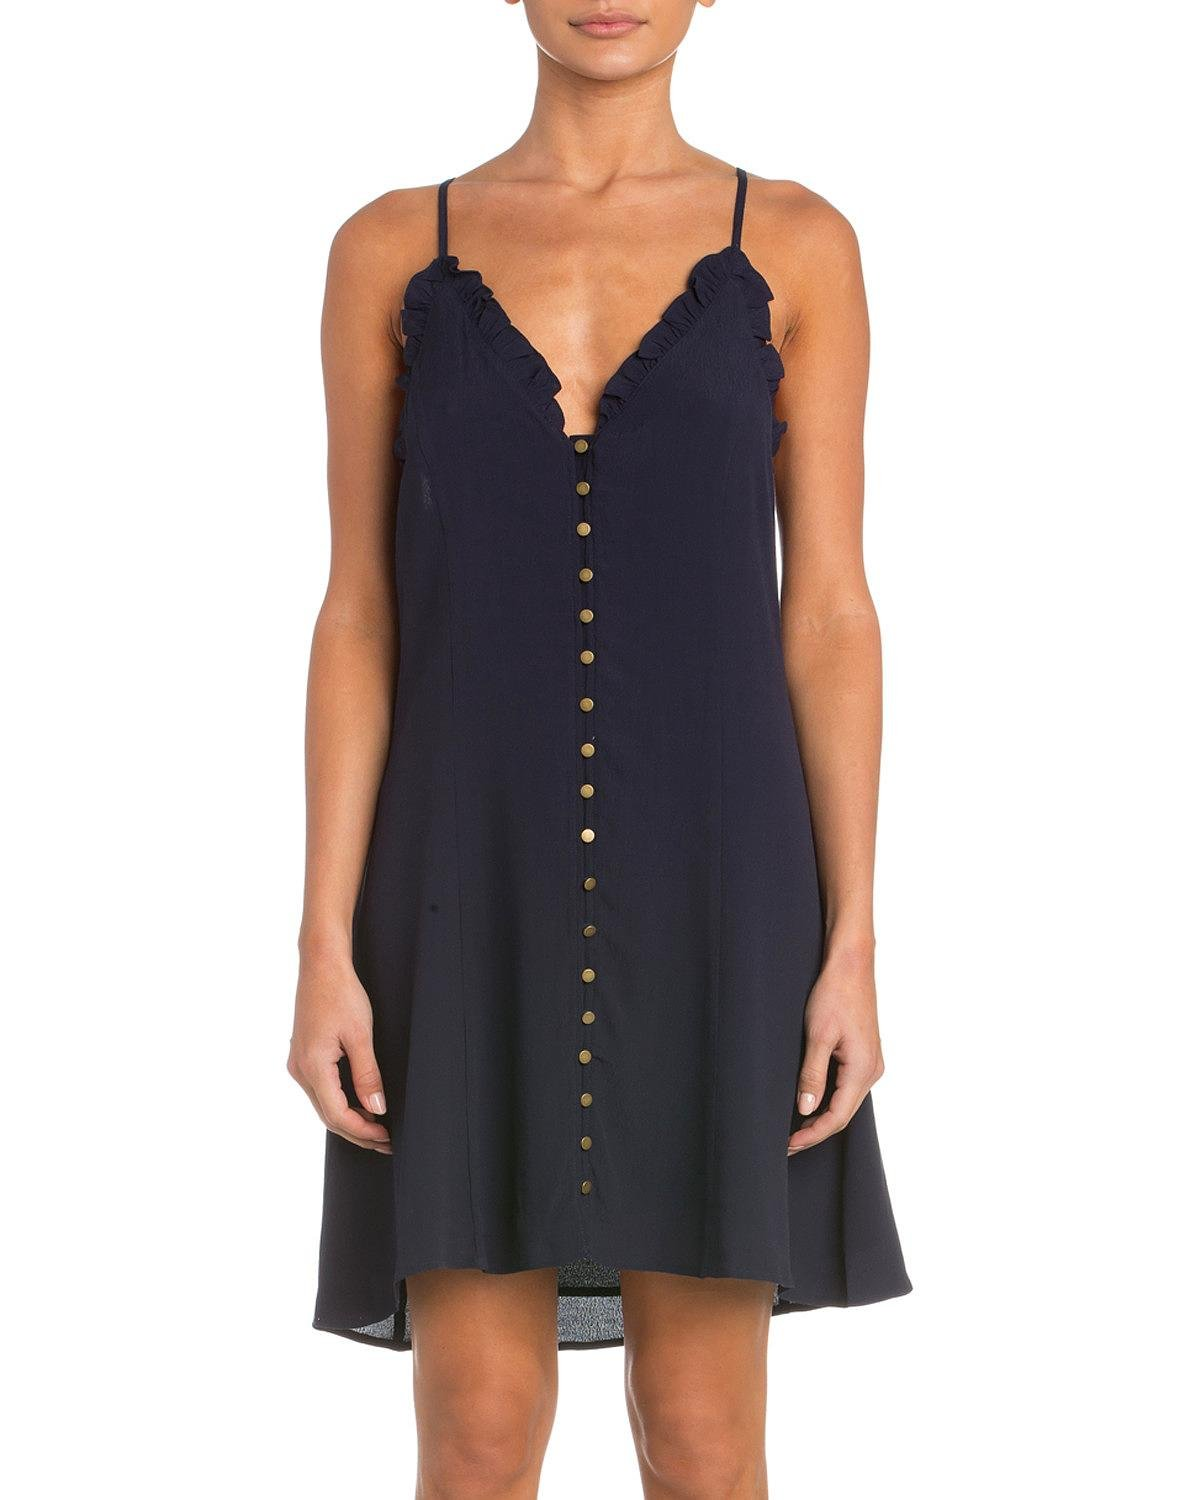 Miss Me Women's The Real Thing Dress Navy Medium